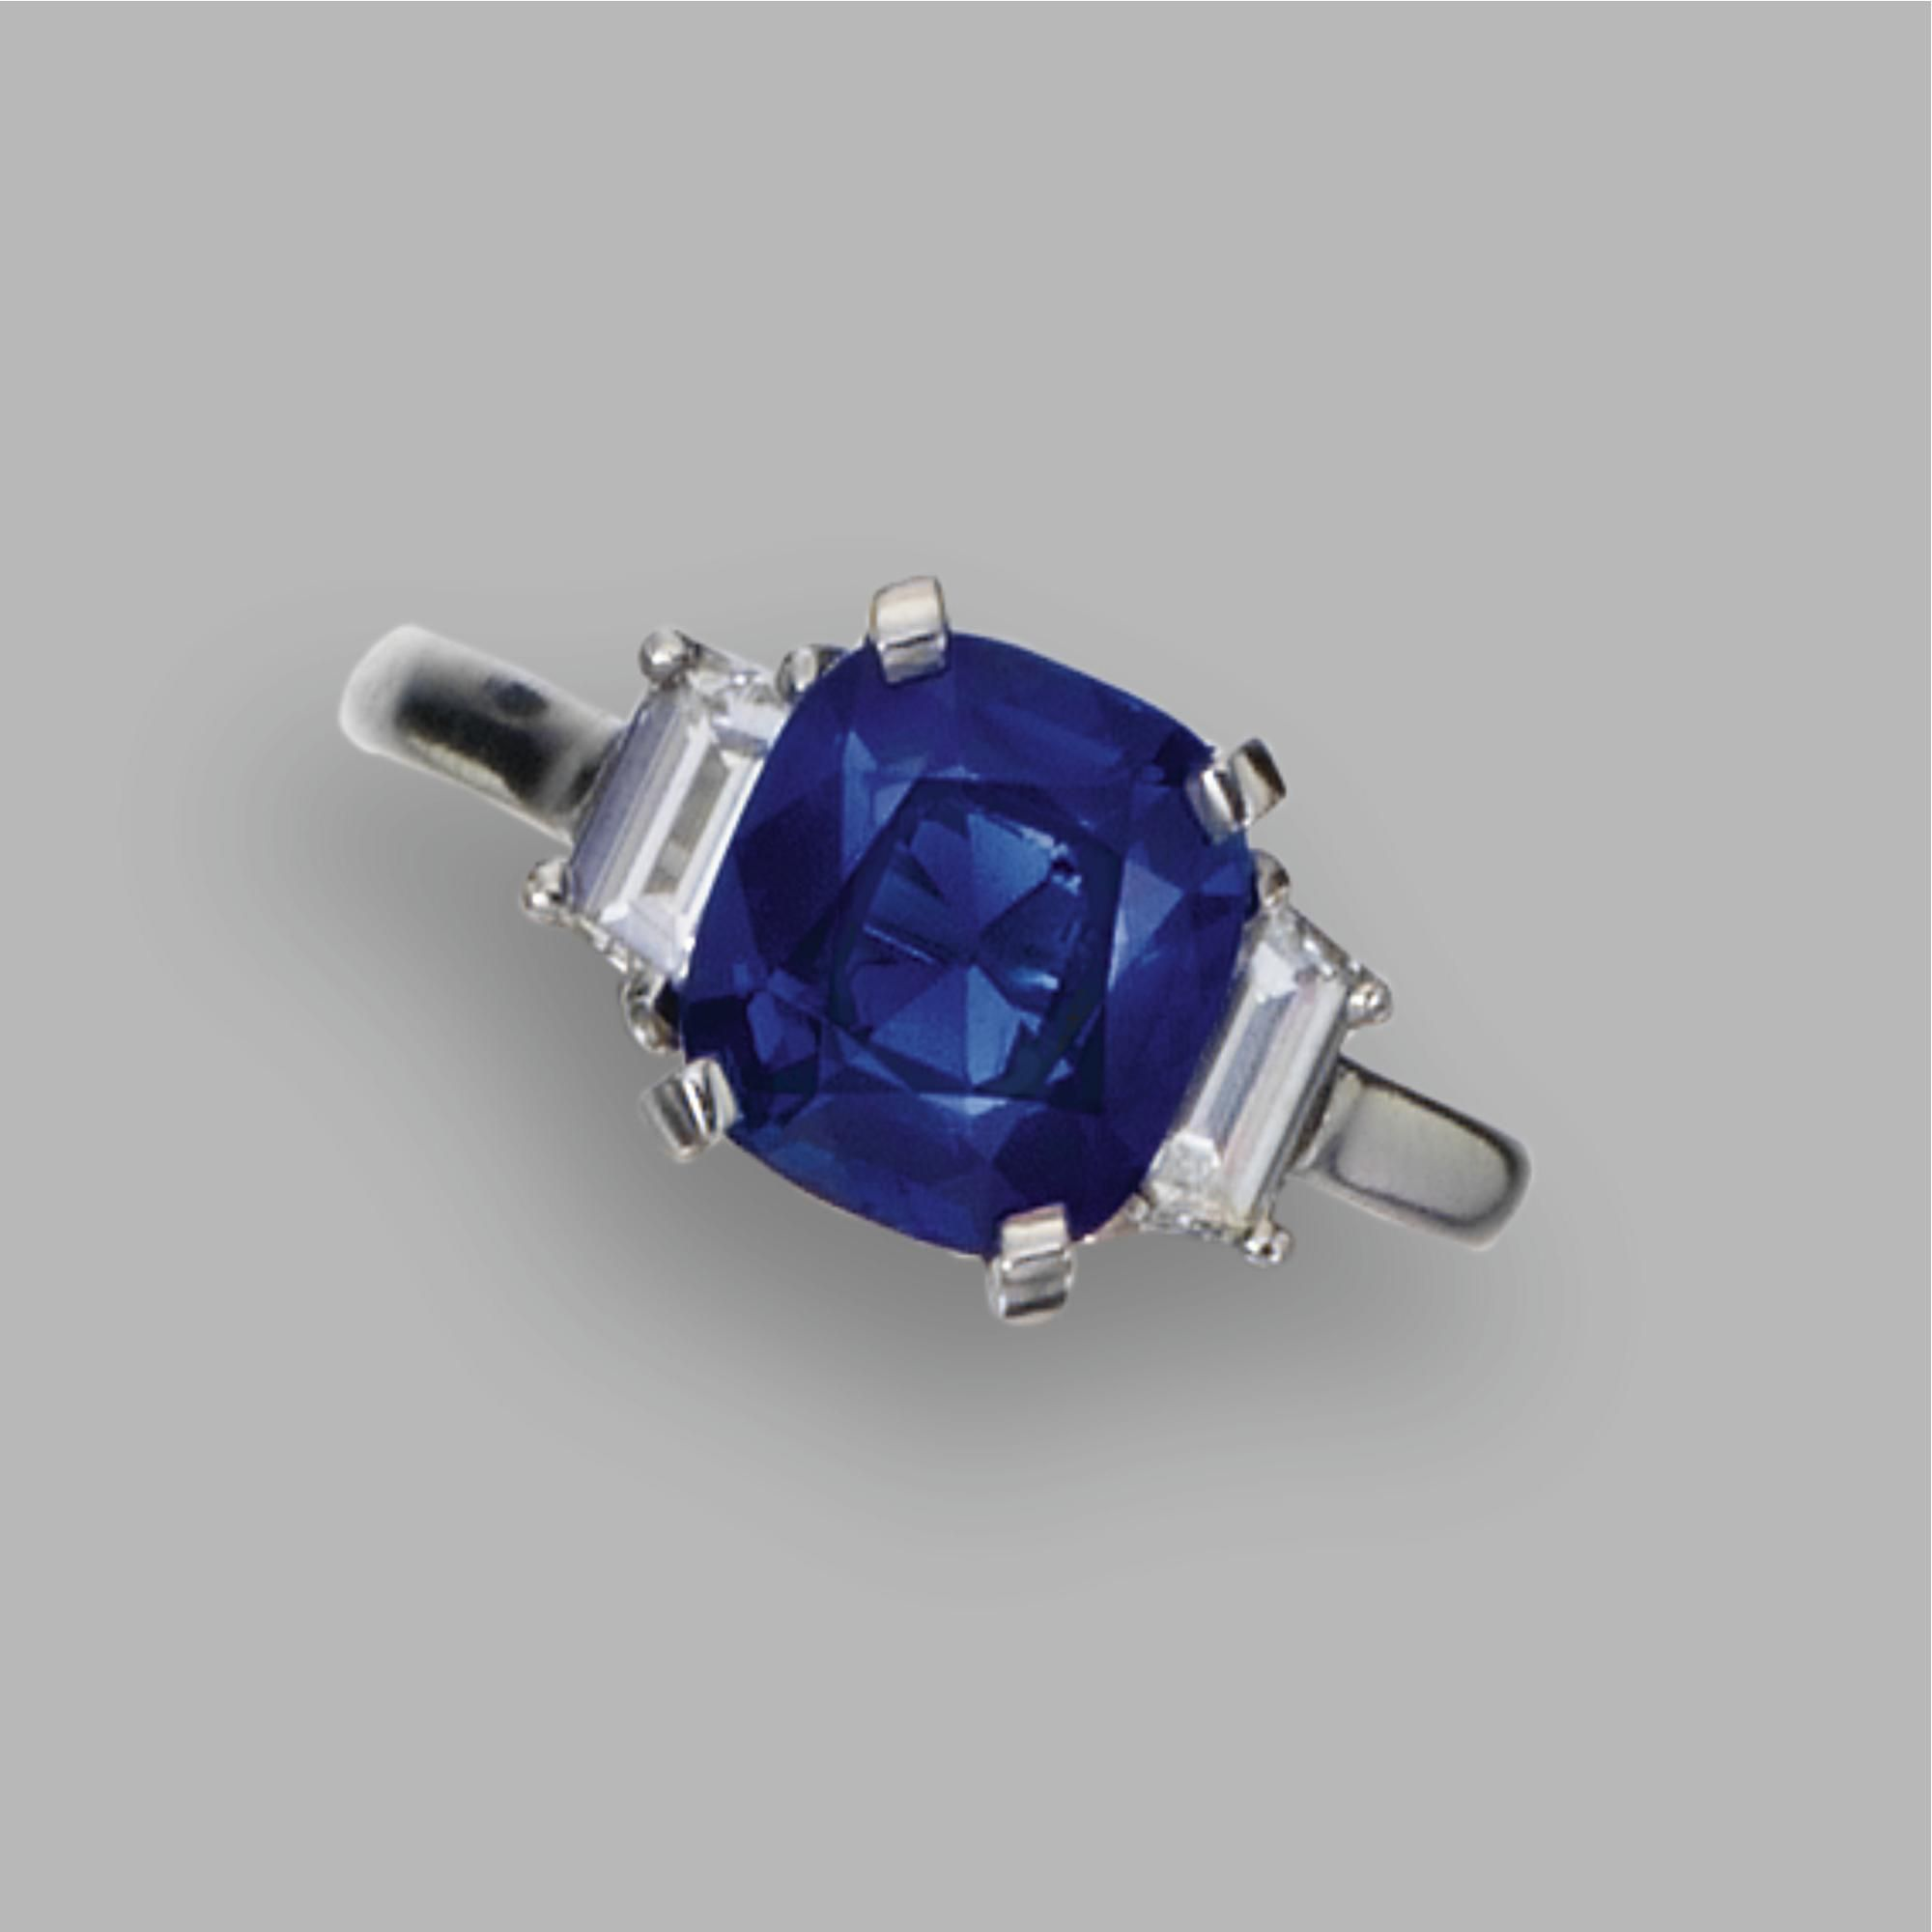 white brilliant simulated ring created plating carat with passion gold cut product jewellery sapphire